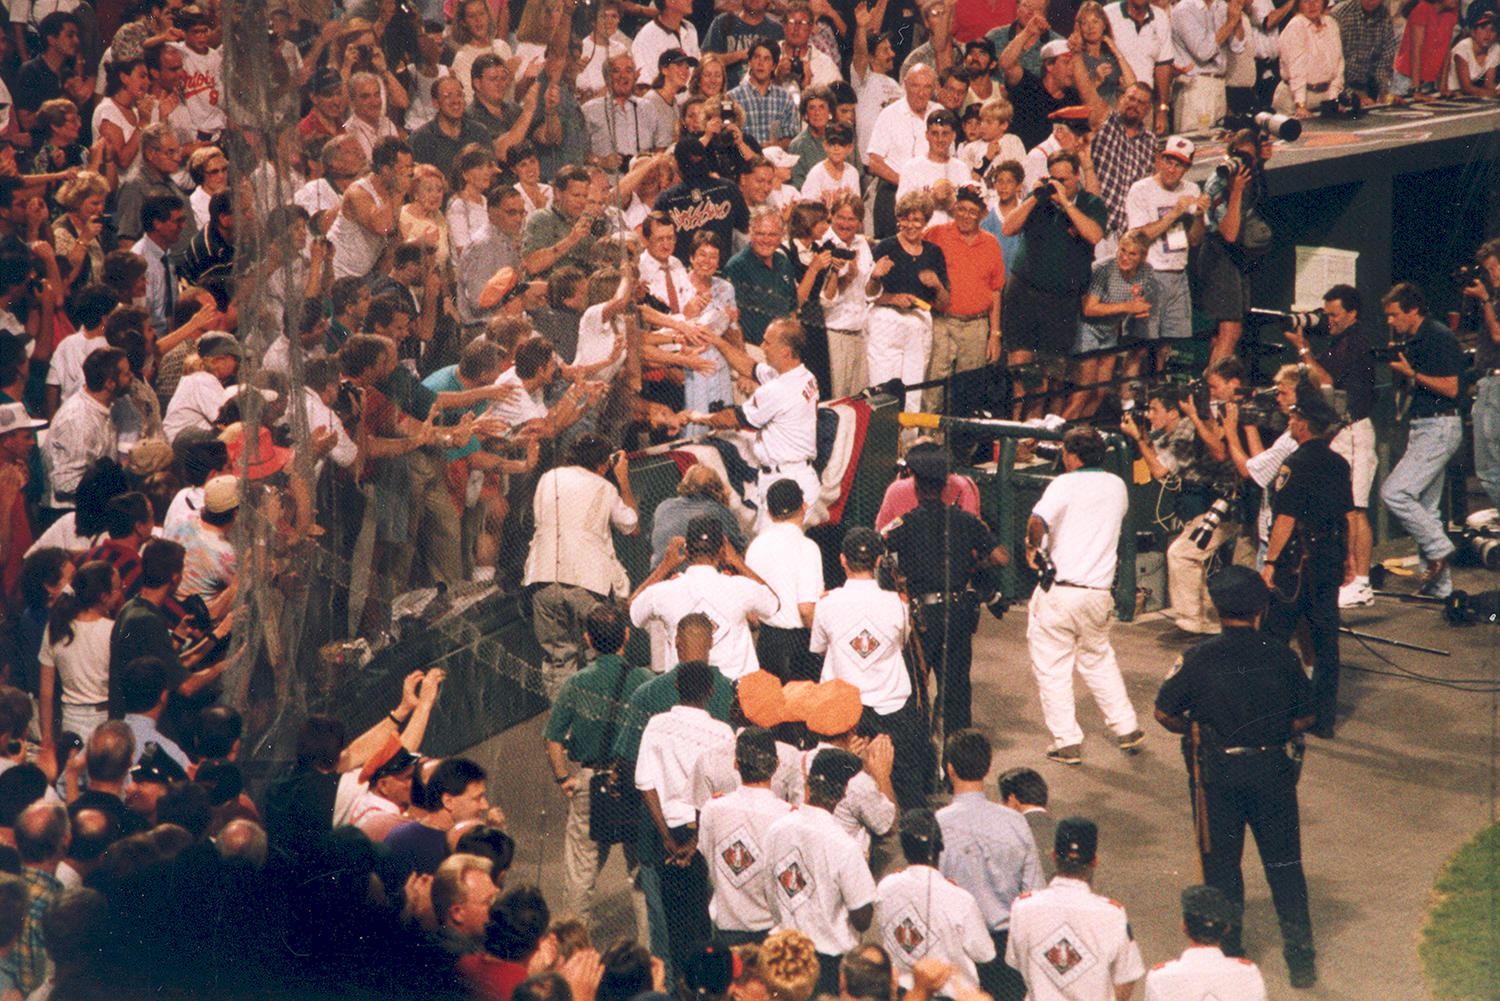 Cal Ripken takes a lap after the fifth inning of his 2,131st consecutive game played on Sept. 6, 1995. (National Baseball Hall of Fame and Museum)